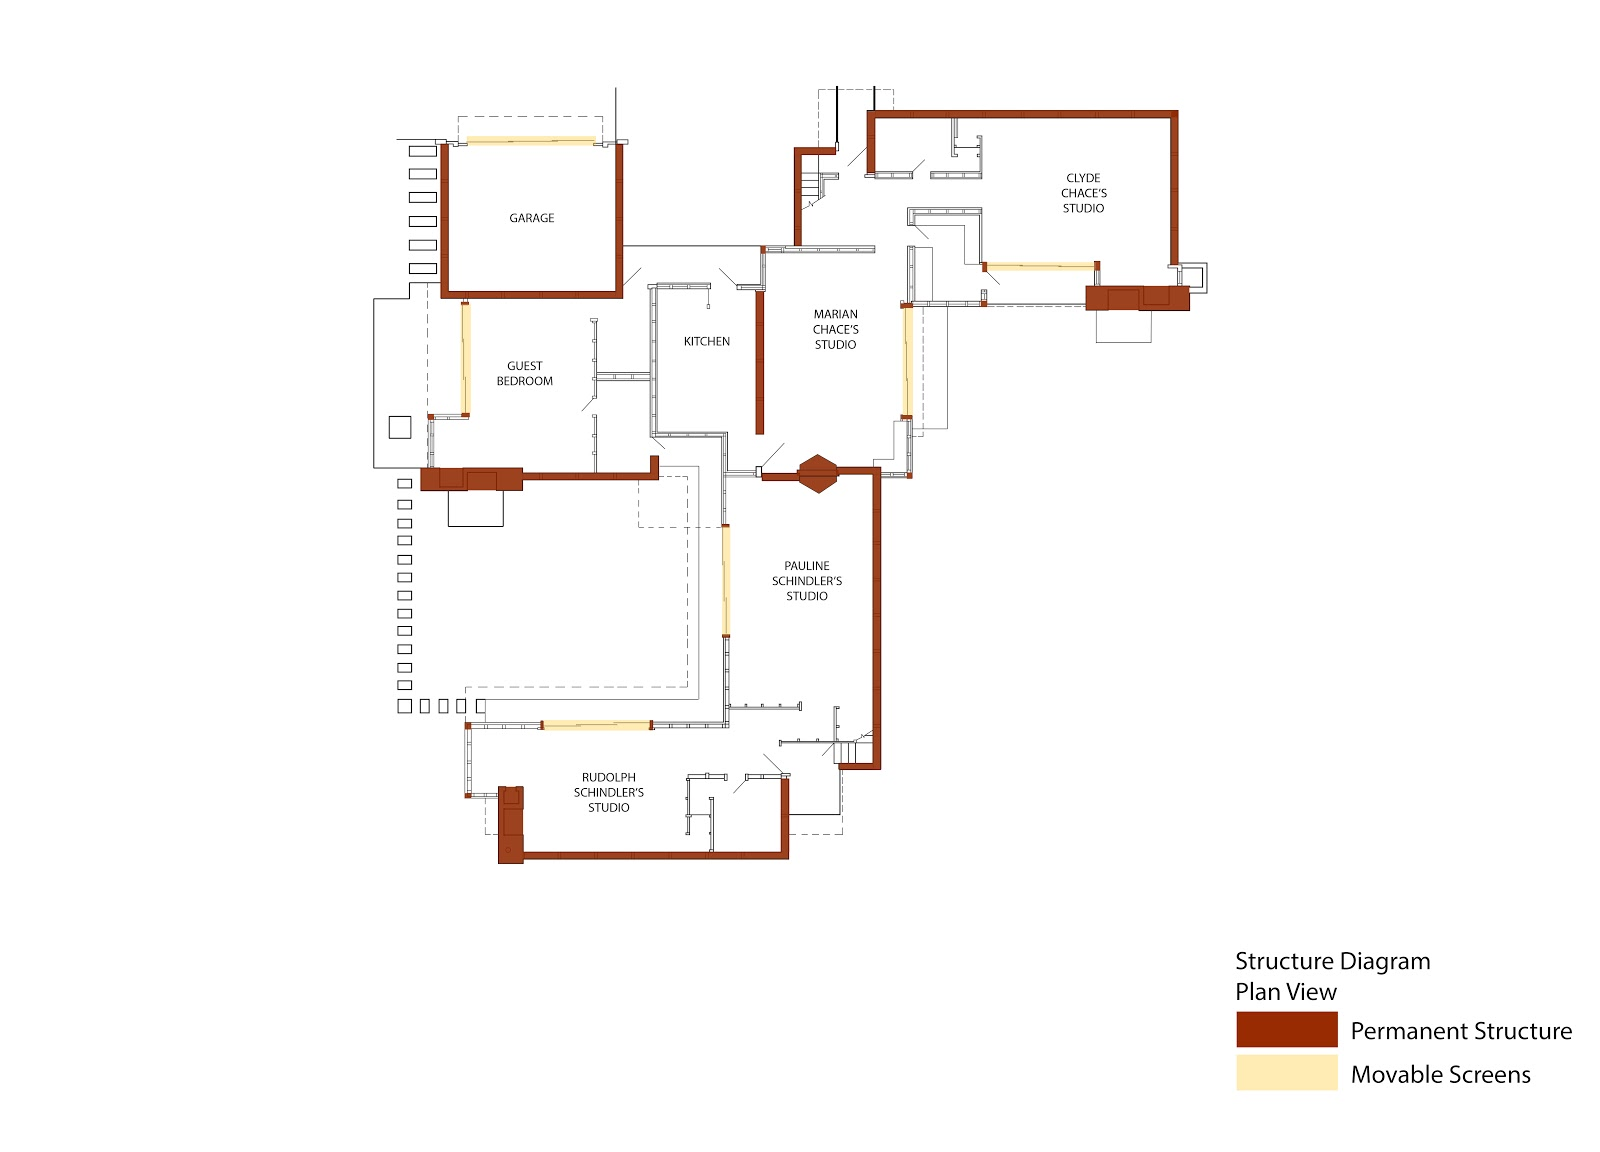 Schindler chace house explanatory diagrams for Foremost homes floor plans